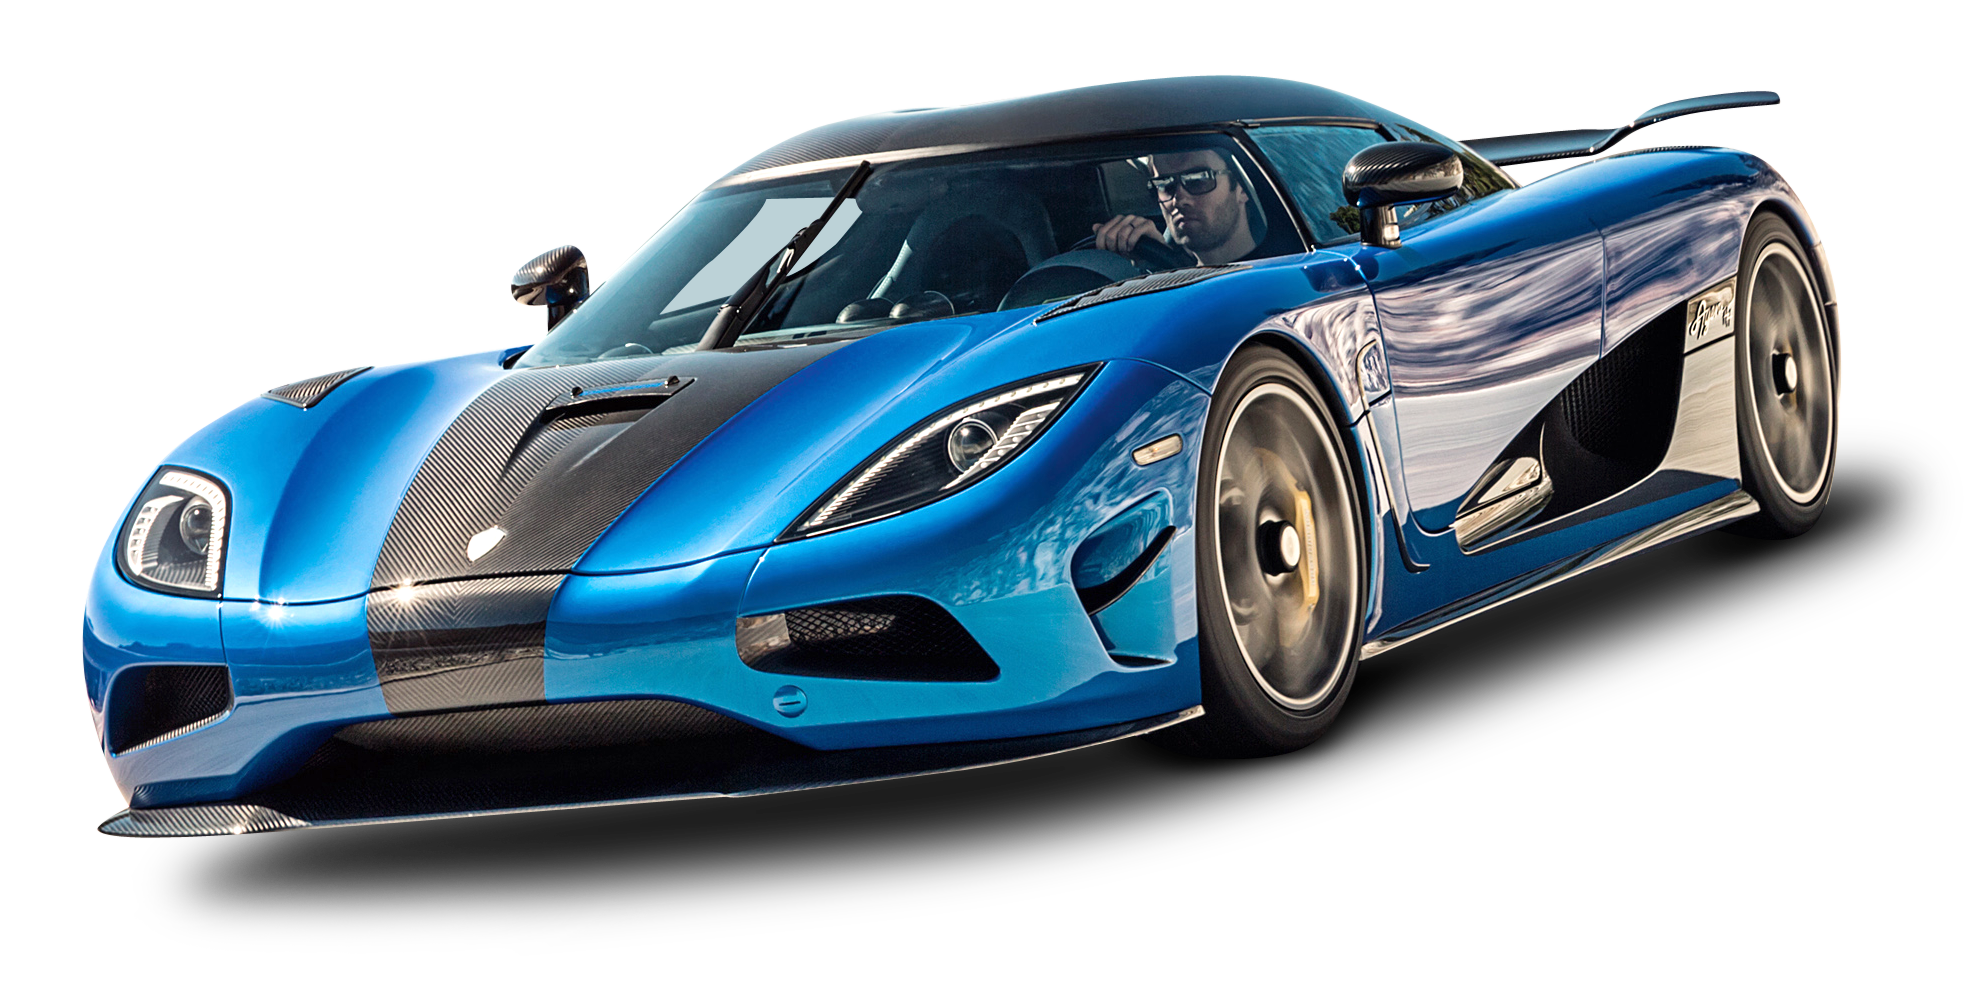 Koenigsegg Agera Png - Pin by Hopeless on transportation | Koenigsegg, Car, Blue